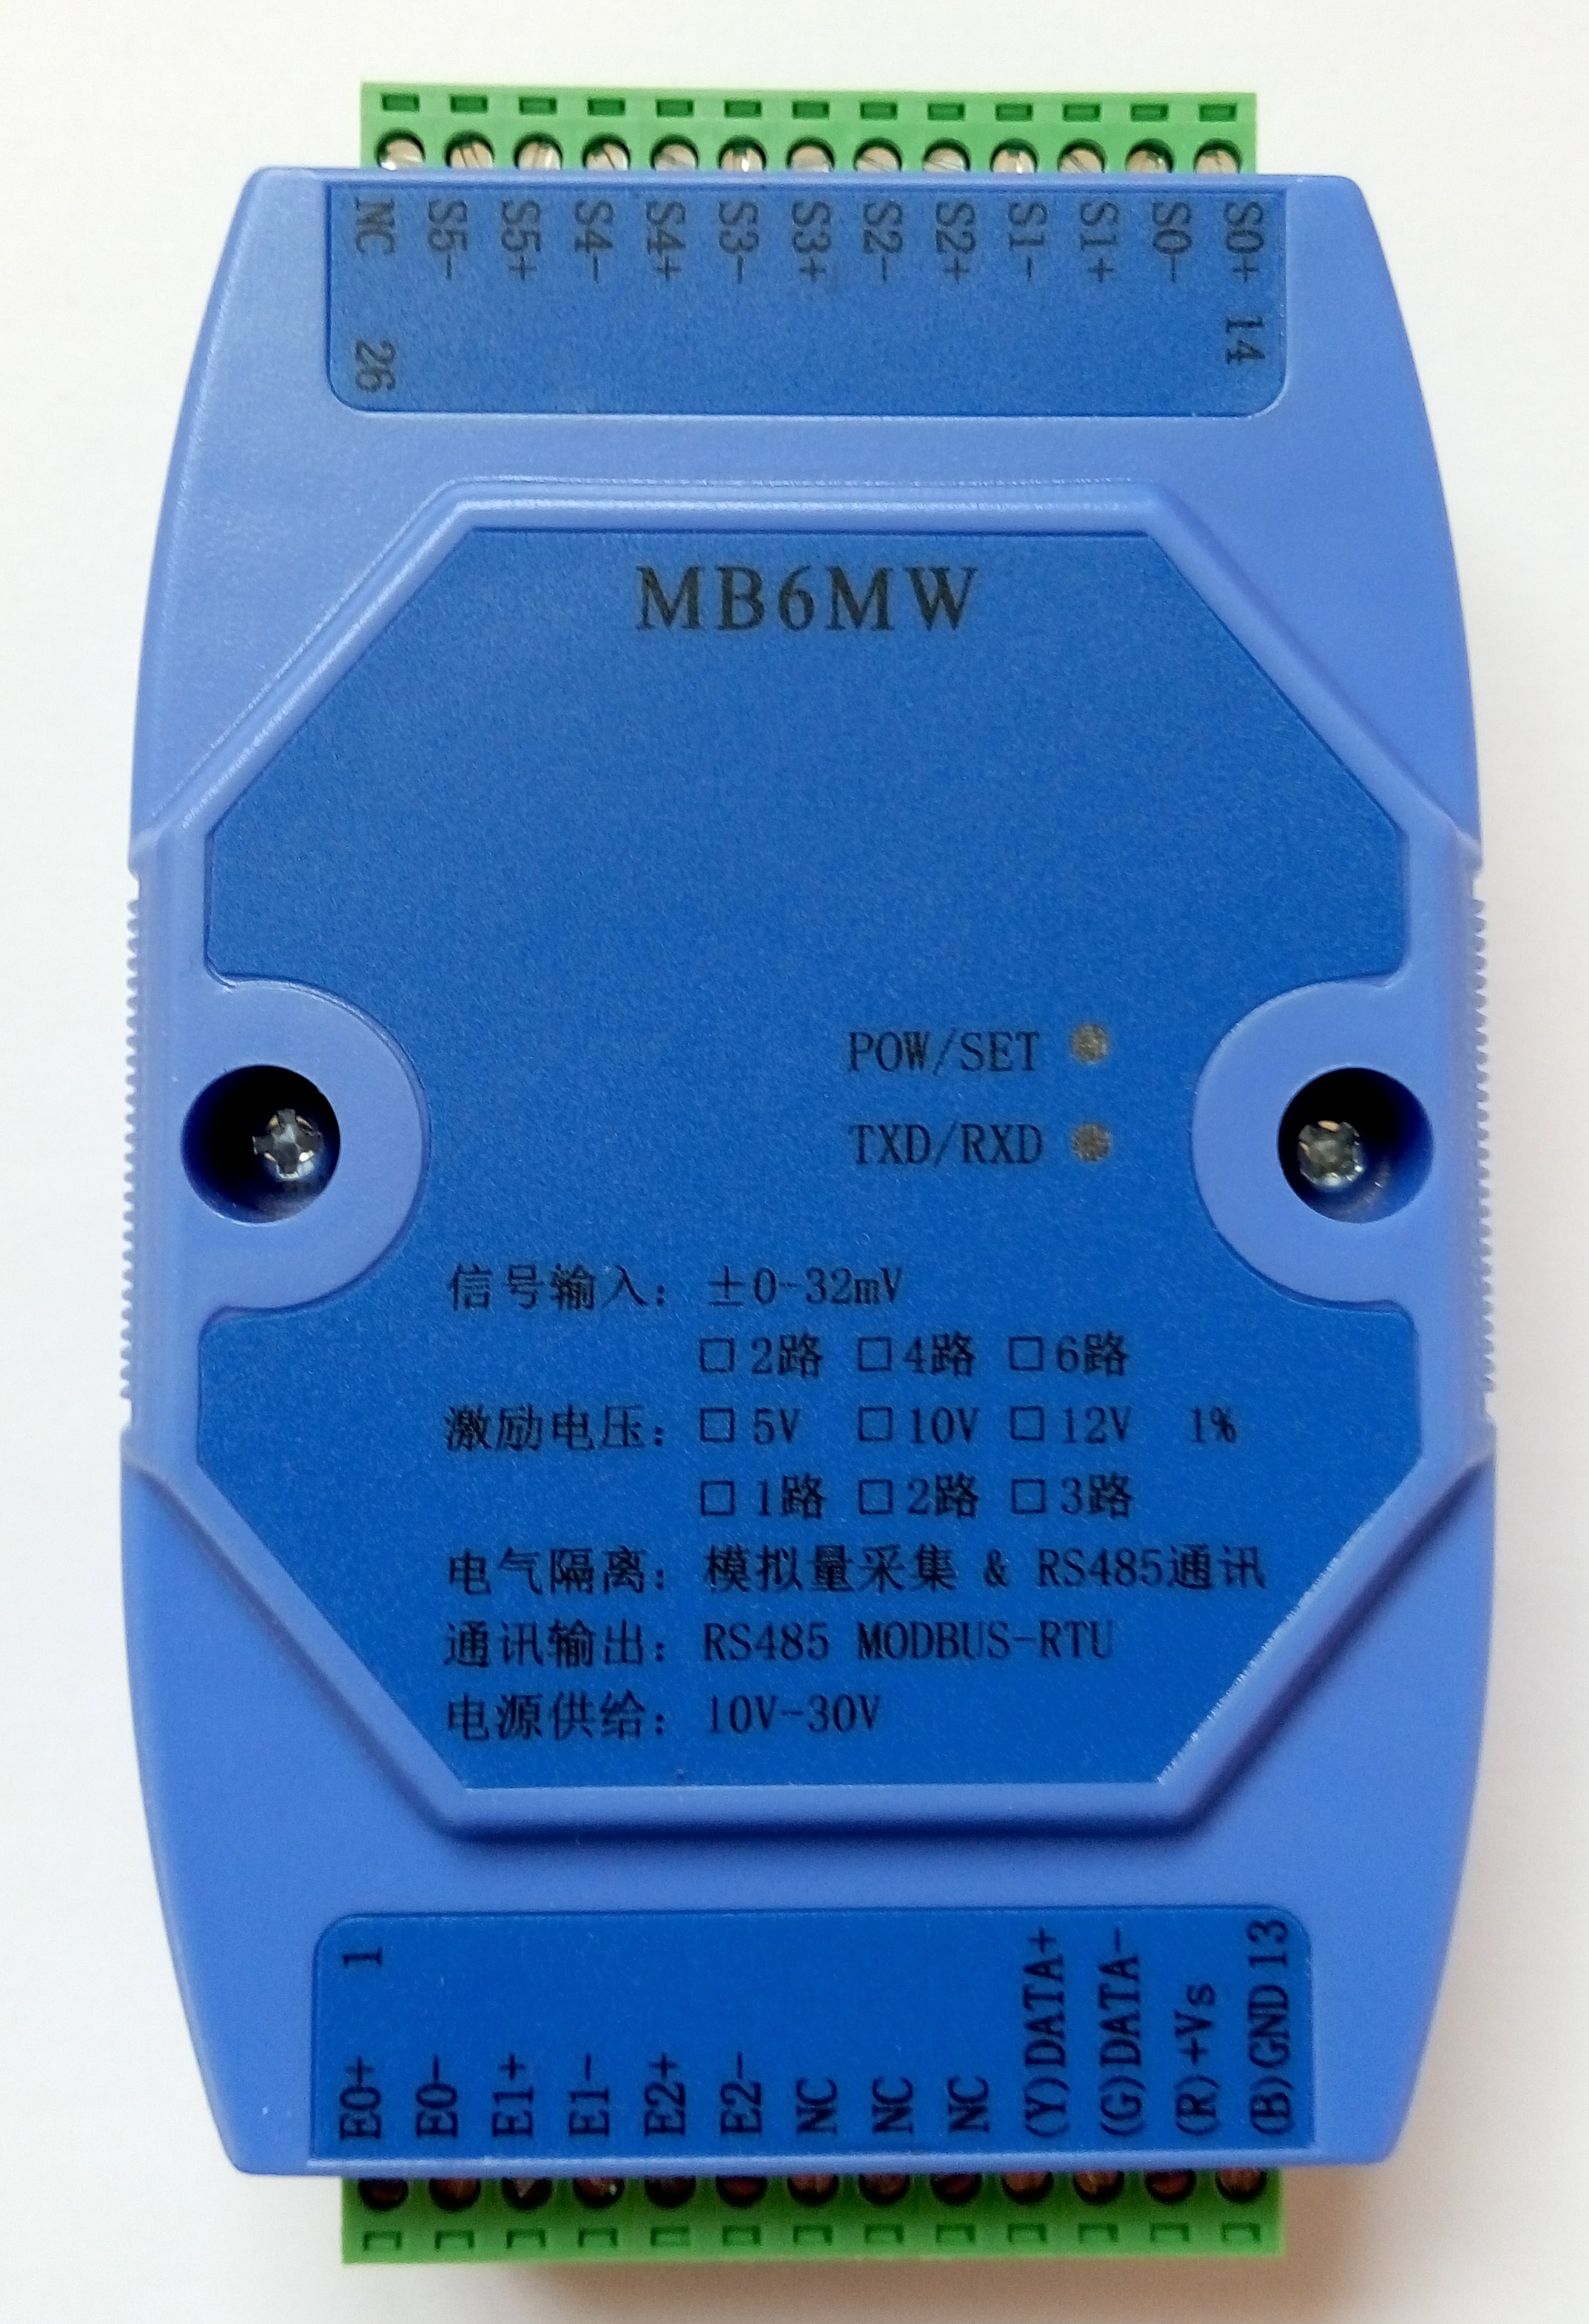 Weighing Acquisition Module, 6 Way Weighing Module, 485 Modbus RTU Protocol Weighing Transmitter soft computing technique an efficient way for improving olsr protocol